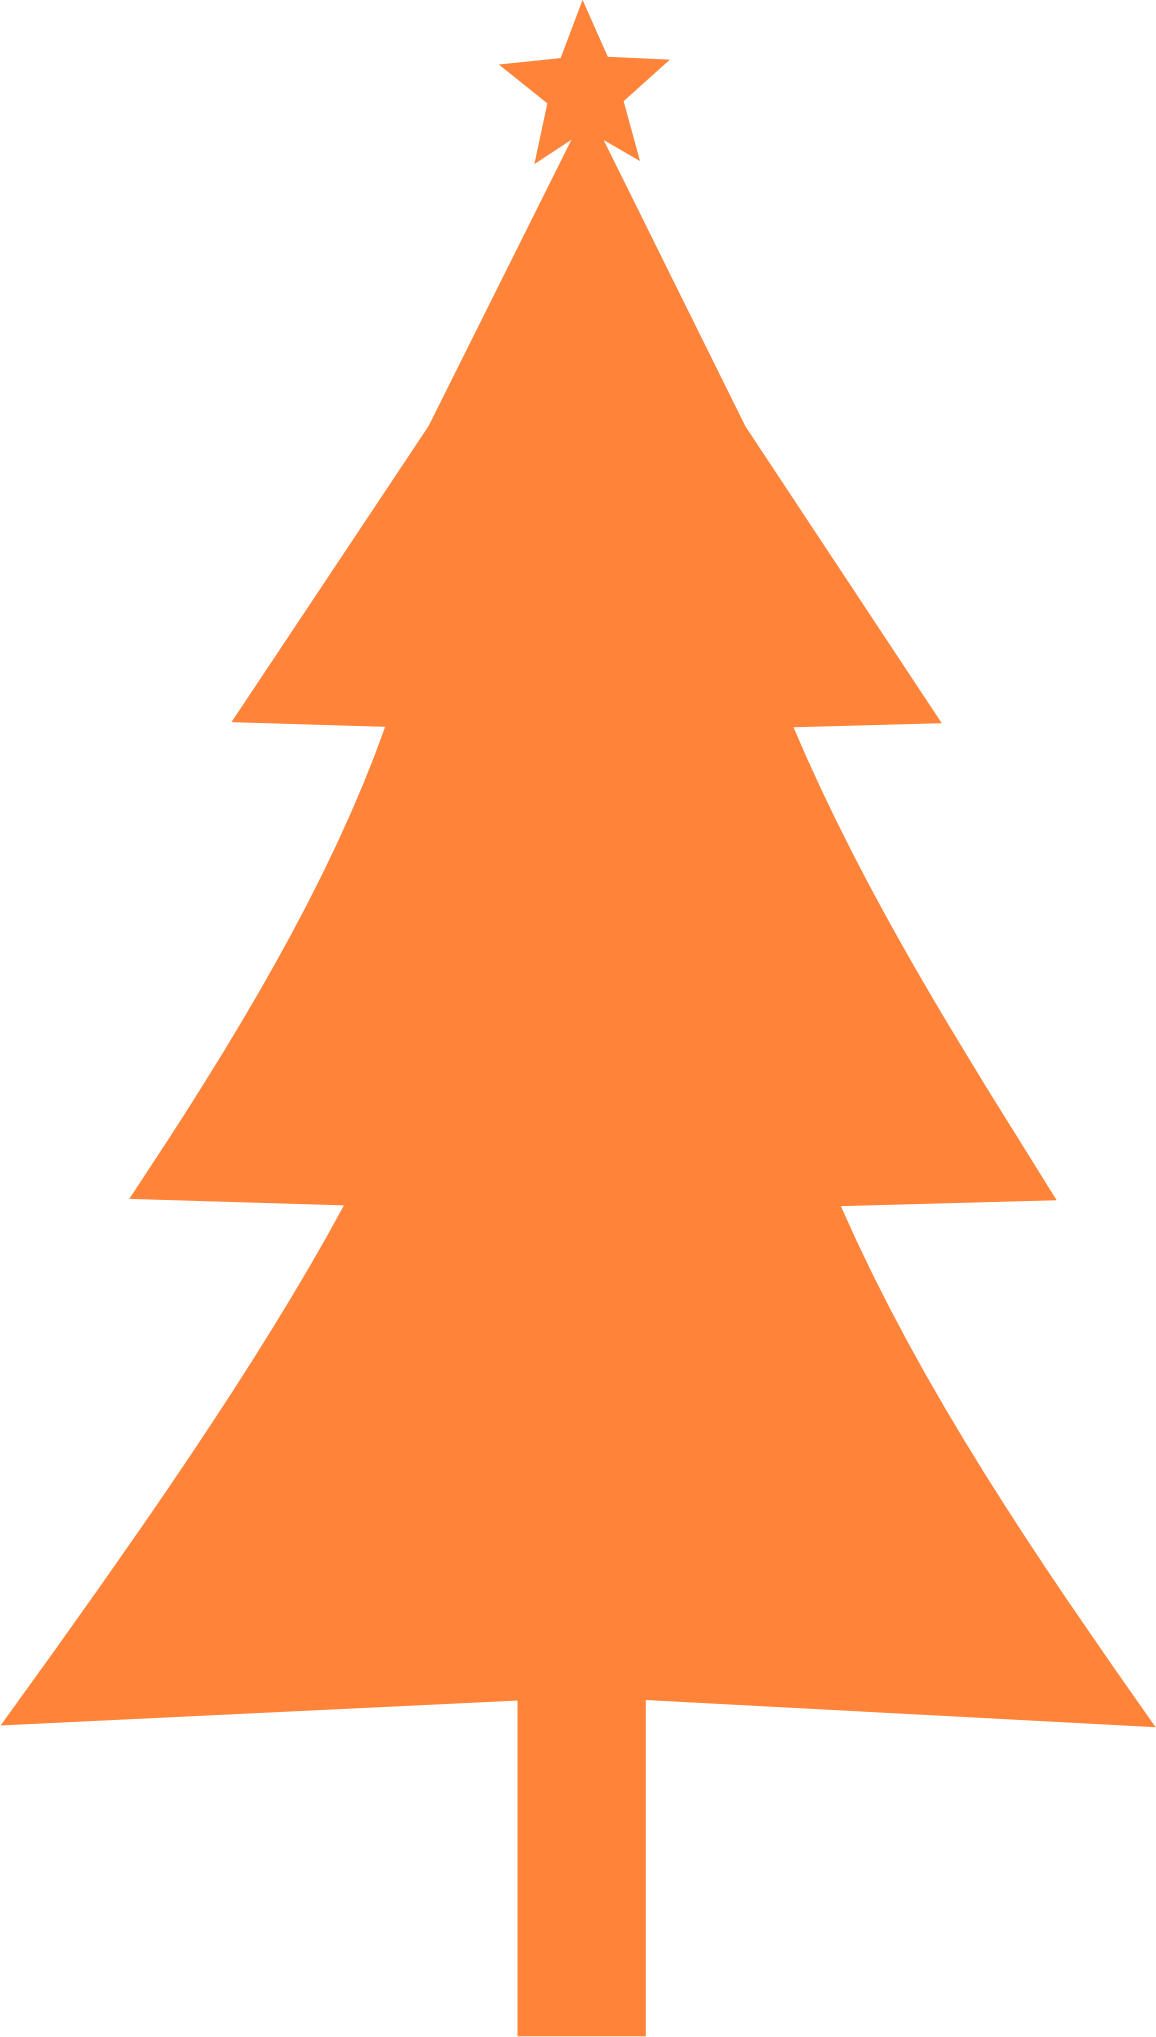 Triangle clip christmas tree clipart. Huge freebie download